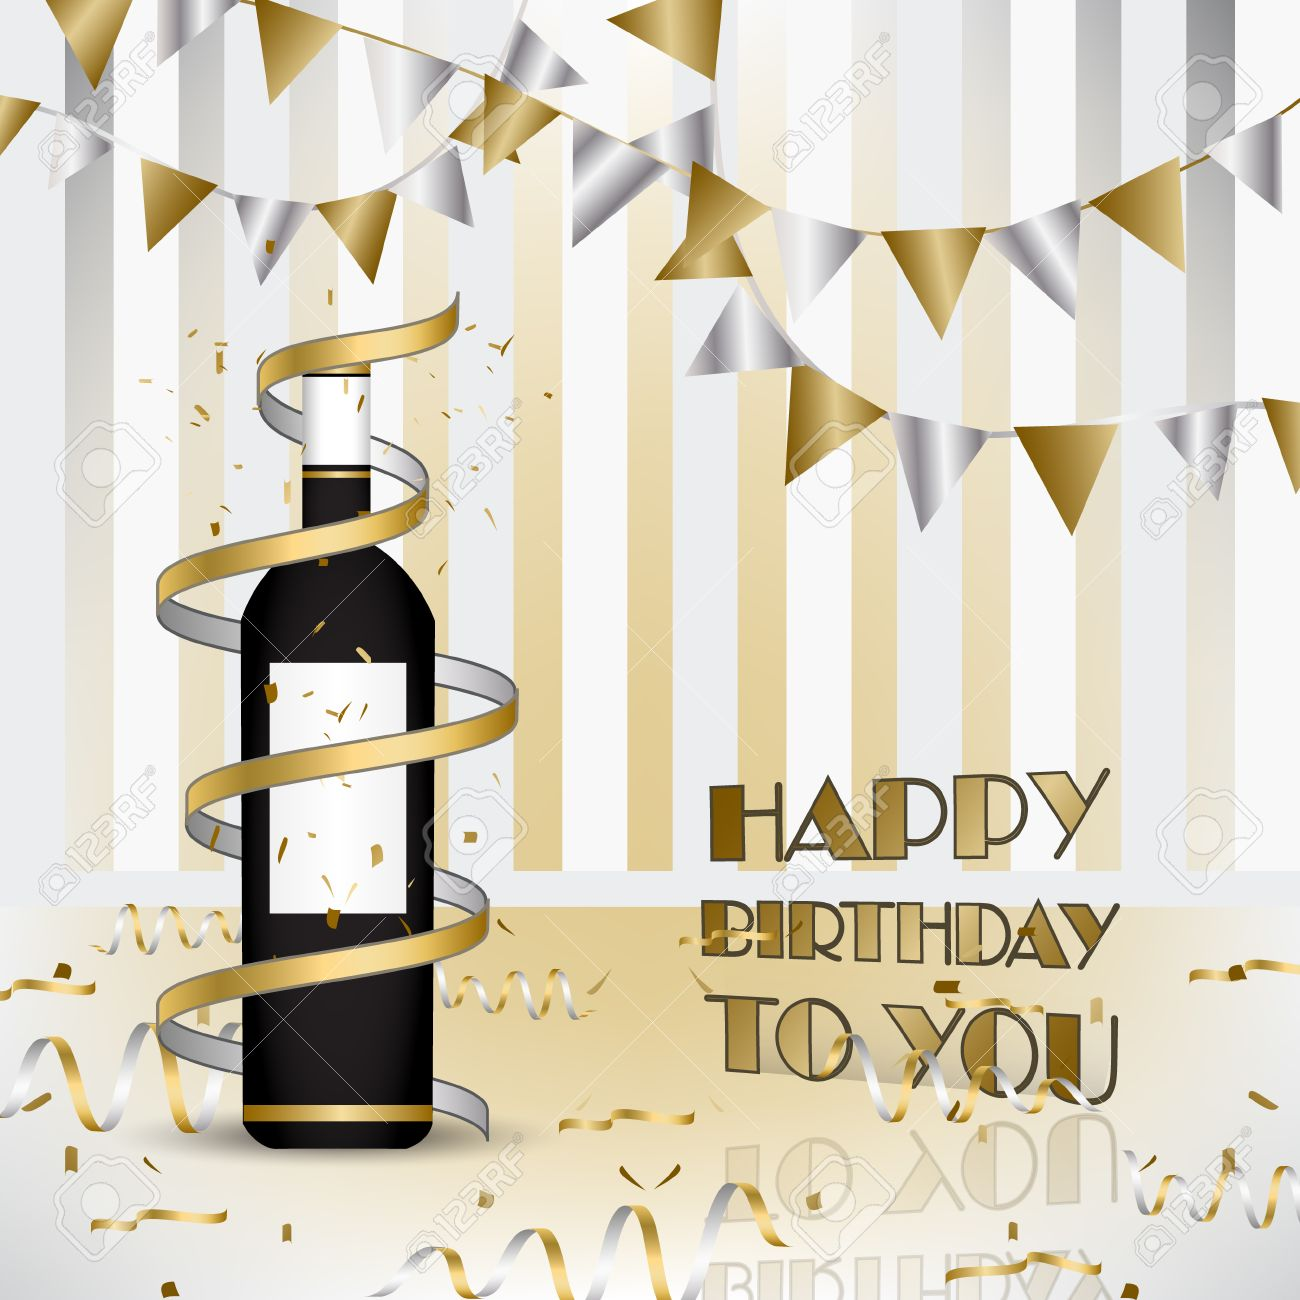 Happy Birthday Background With Bottle Of Wine And Ribbons Design